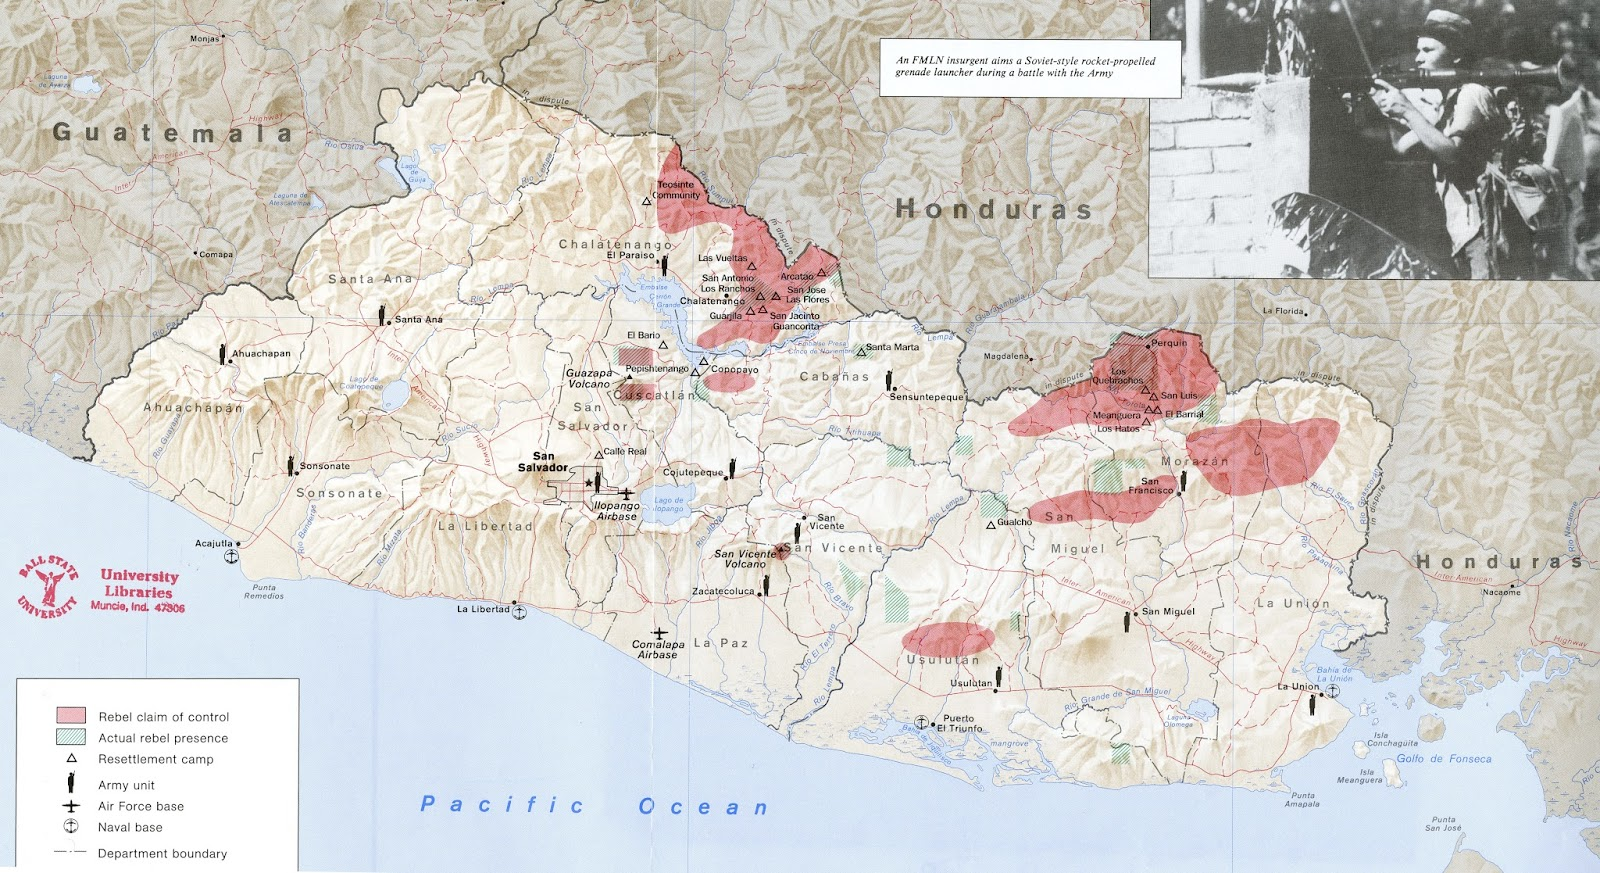 el salvador and immigration maps available from ball state university libraries